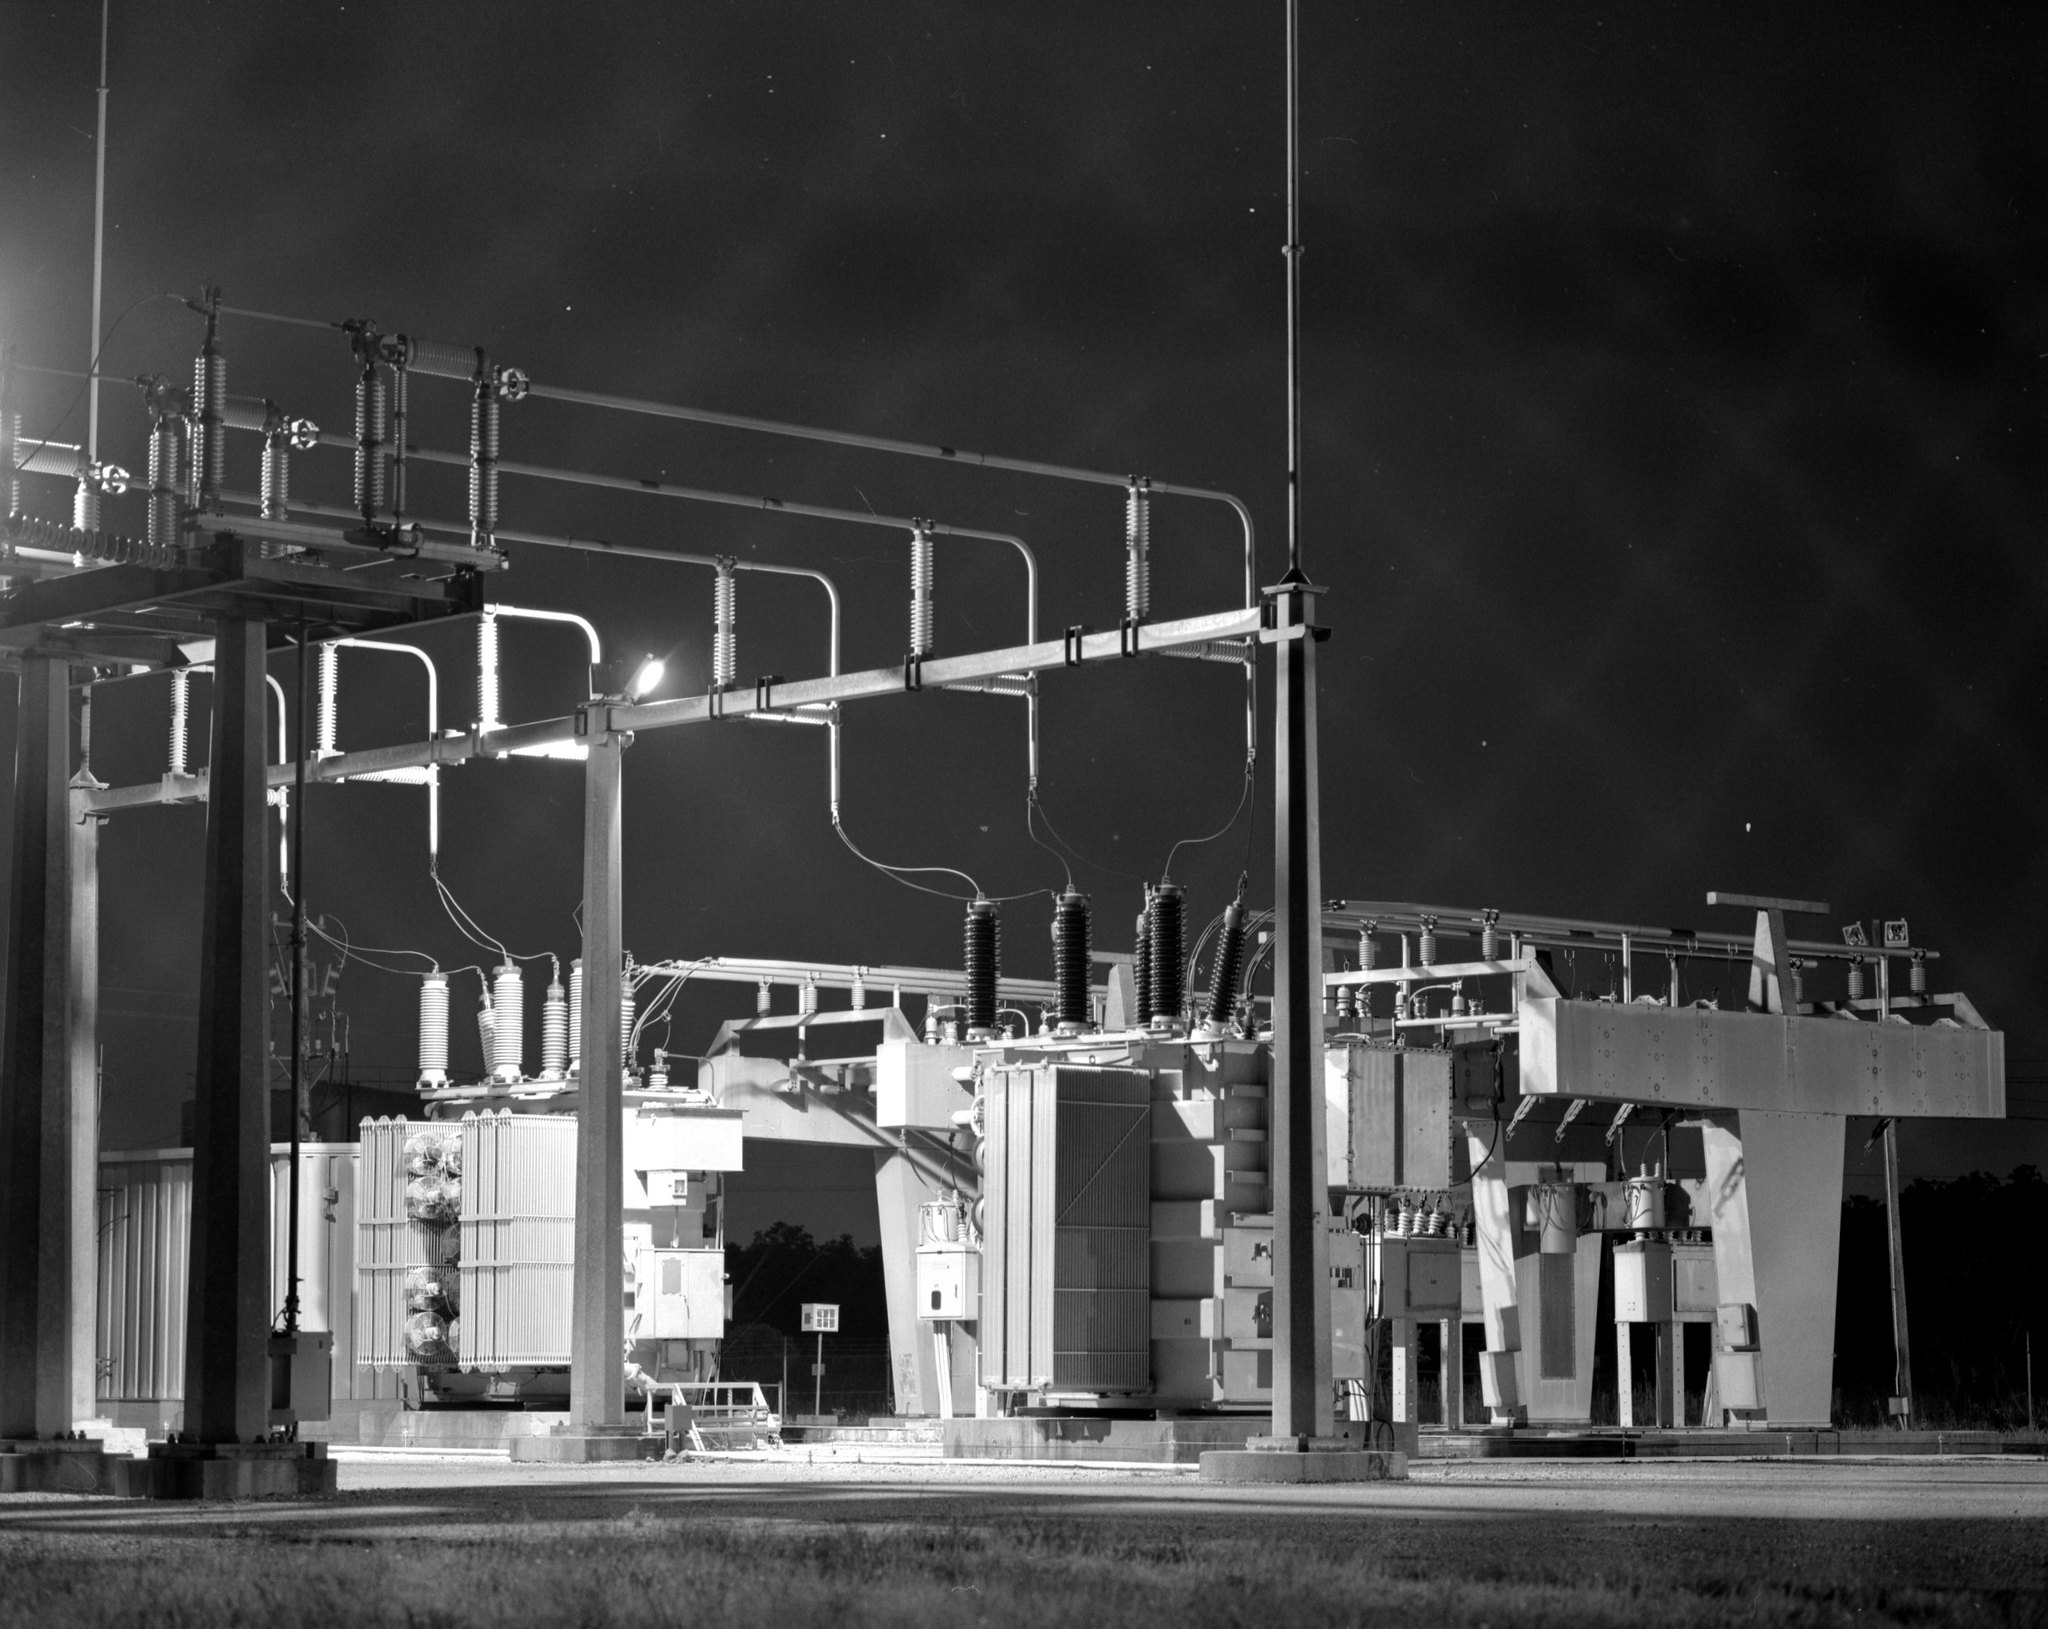 substation chainlink on Flickr